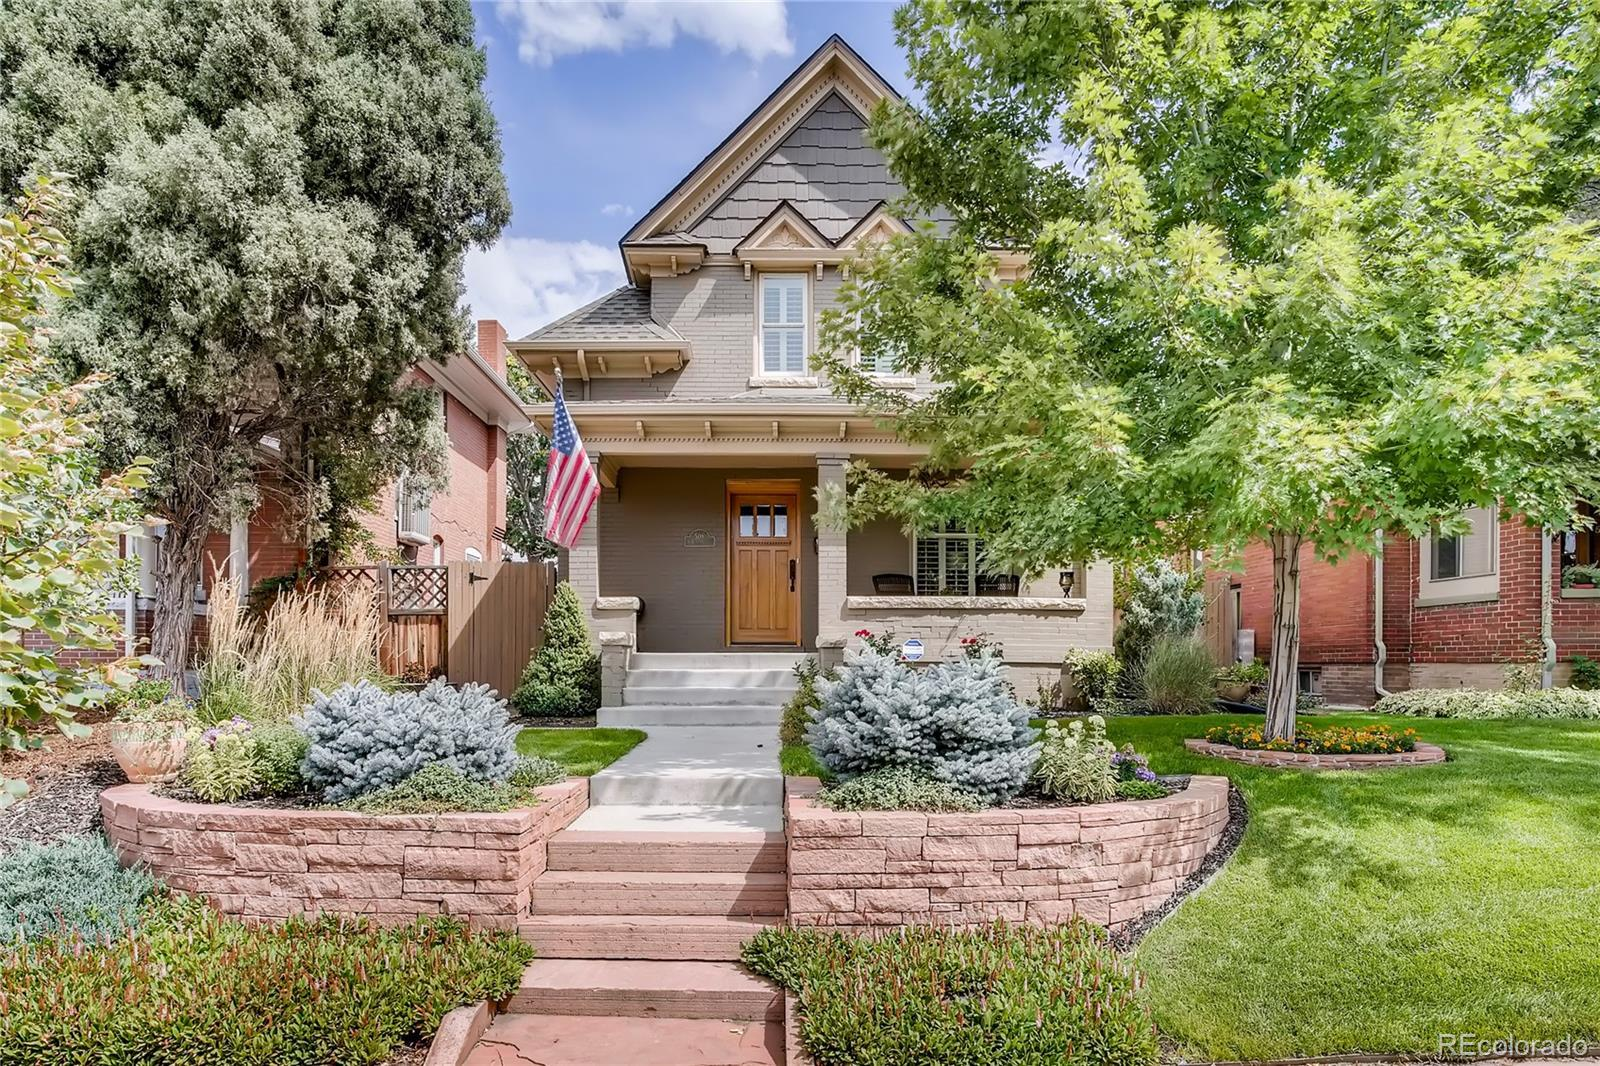 508 S Pearl Street, Denver, CO 80209 - MLS#: 3955056